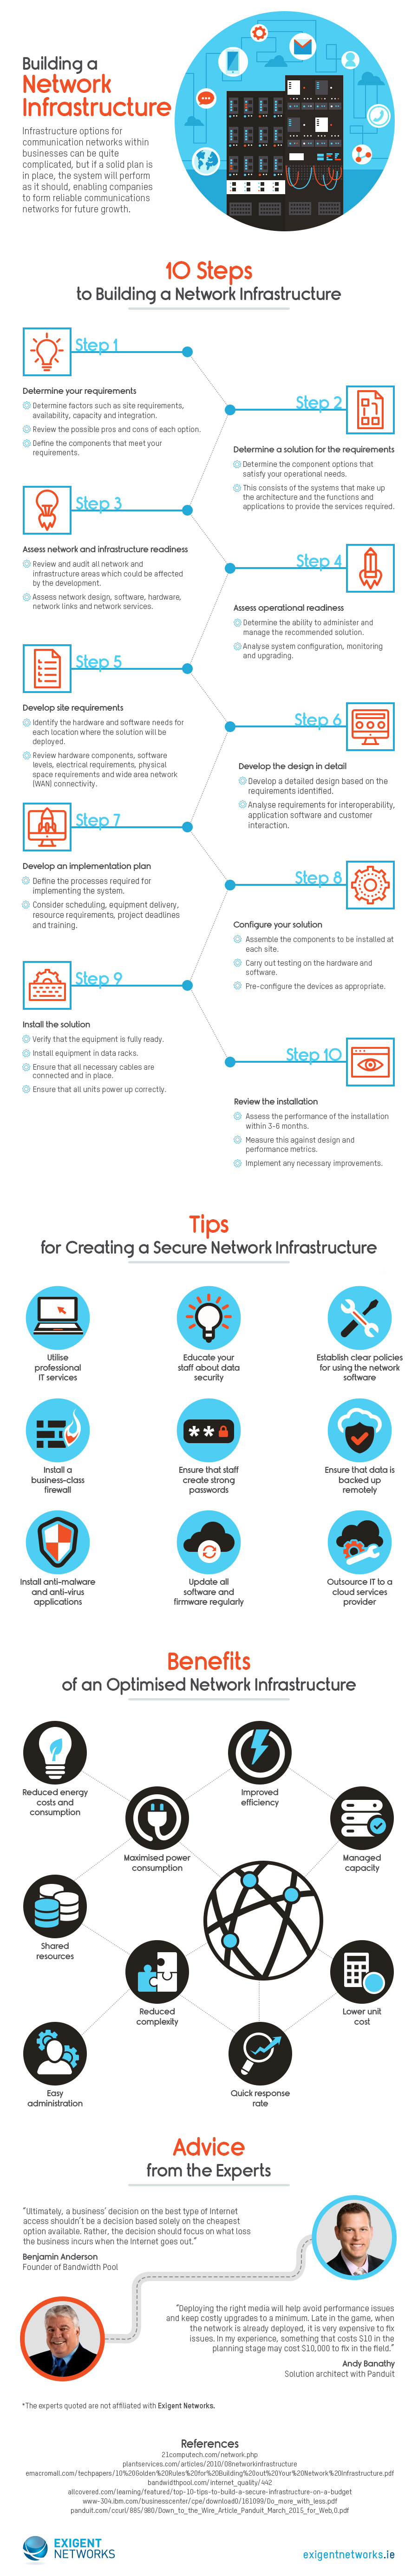 building-a-network-infrastructure-infographic